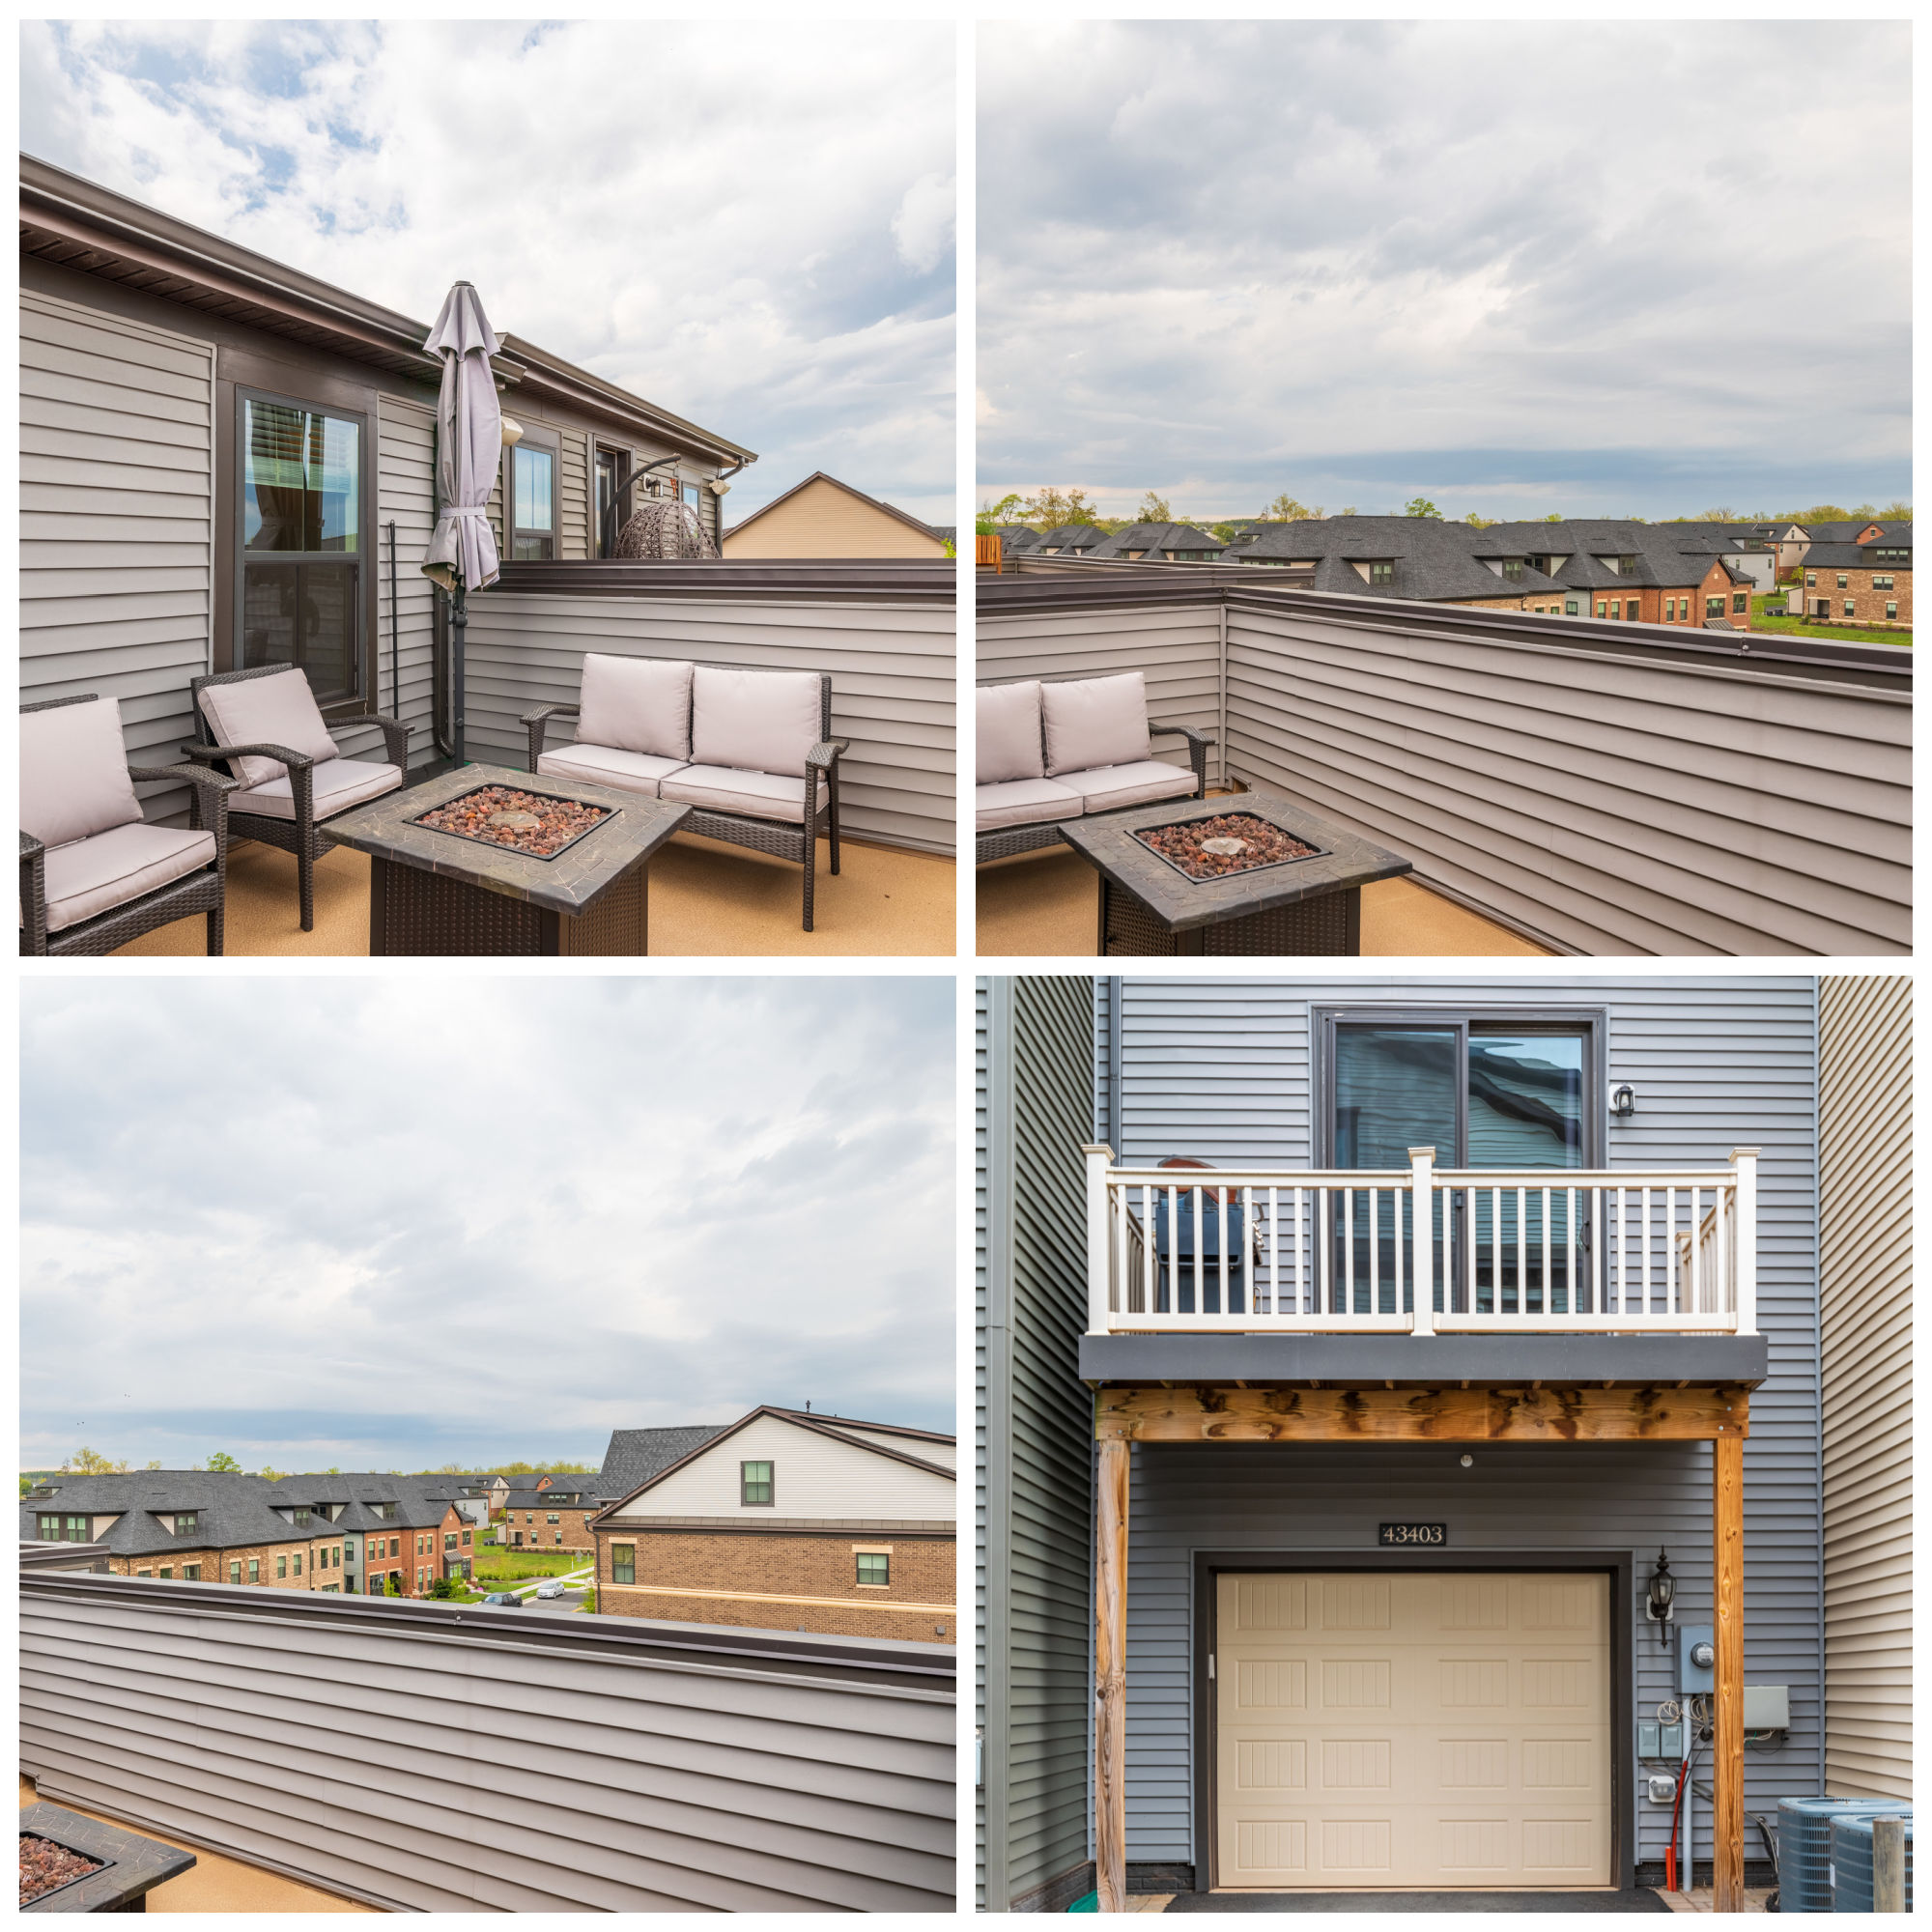 43403 Southland St, Ashburn- Rooftop Patio and Balcony